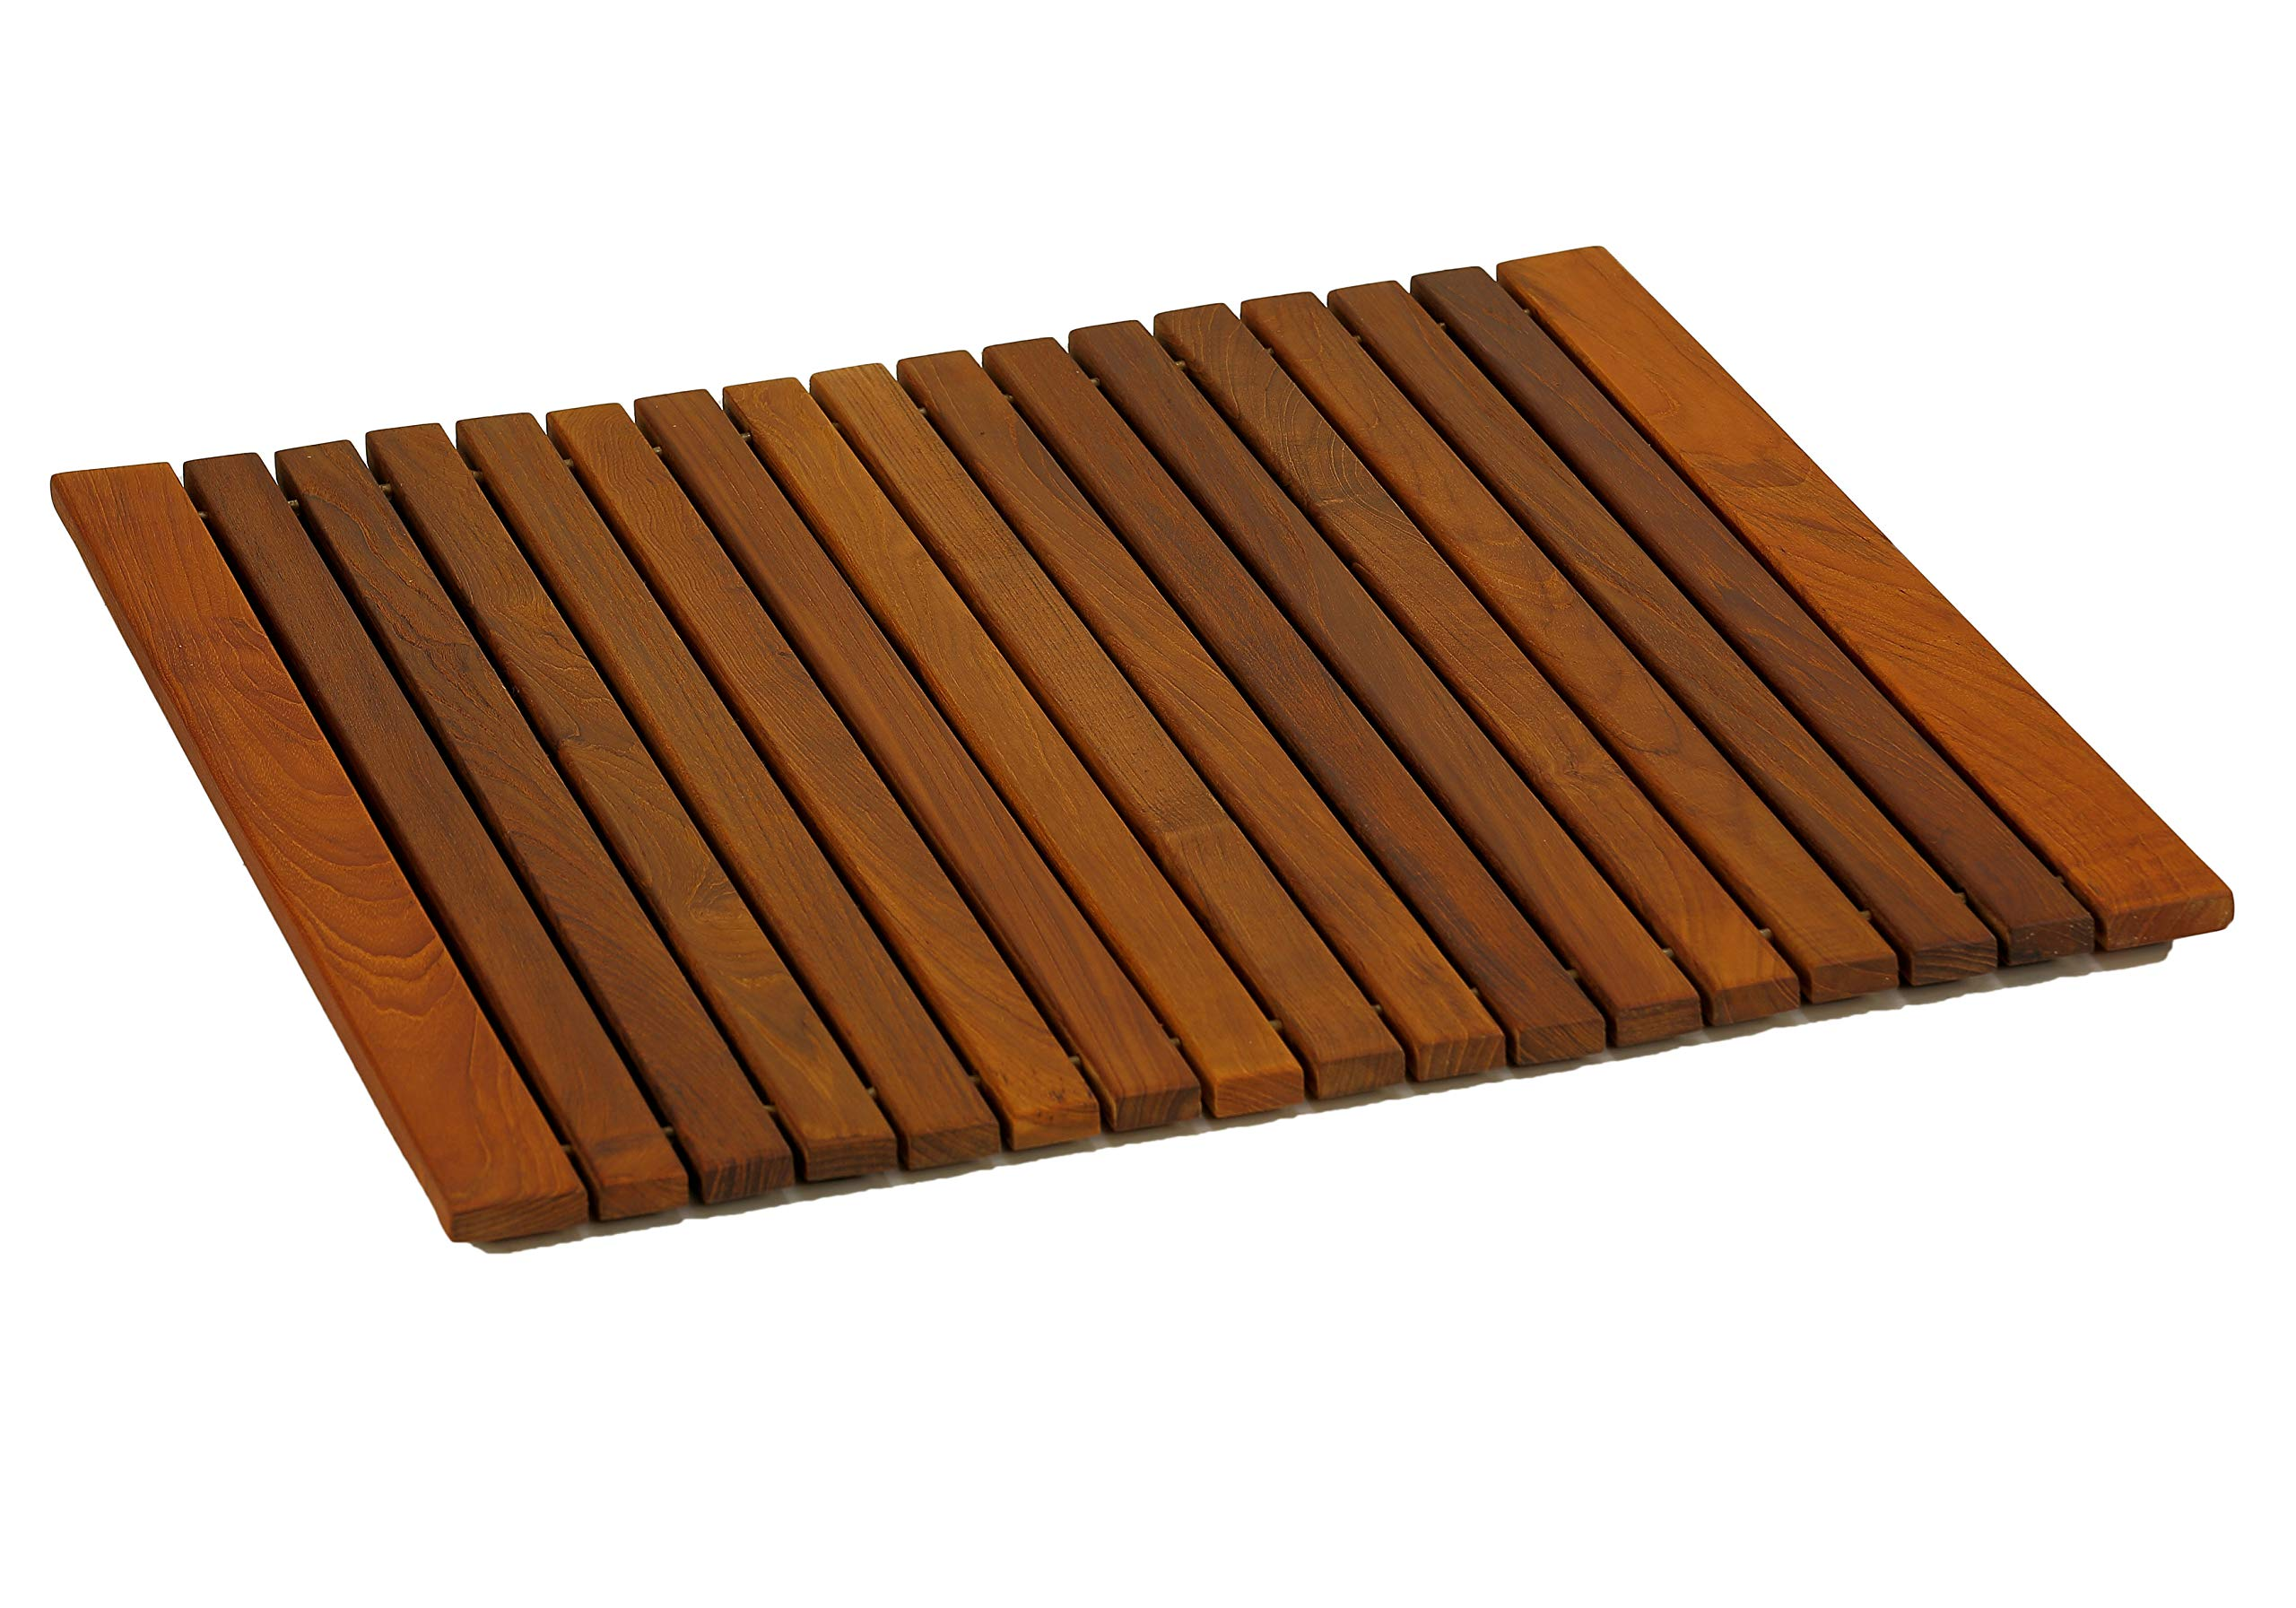 Bare Decor Lykos String Spa Shower Mat in Solid Teak Wood Oiled Finish, Large by Bare Decor